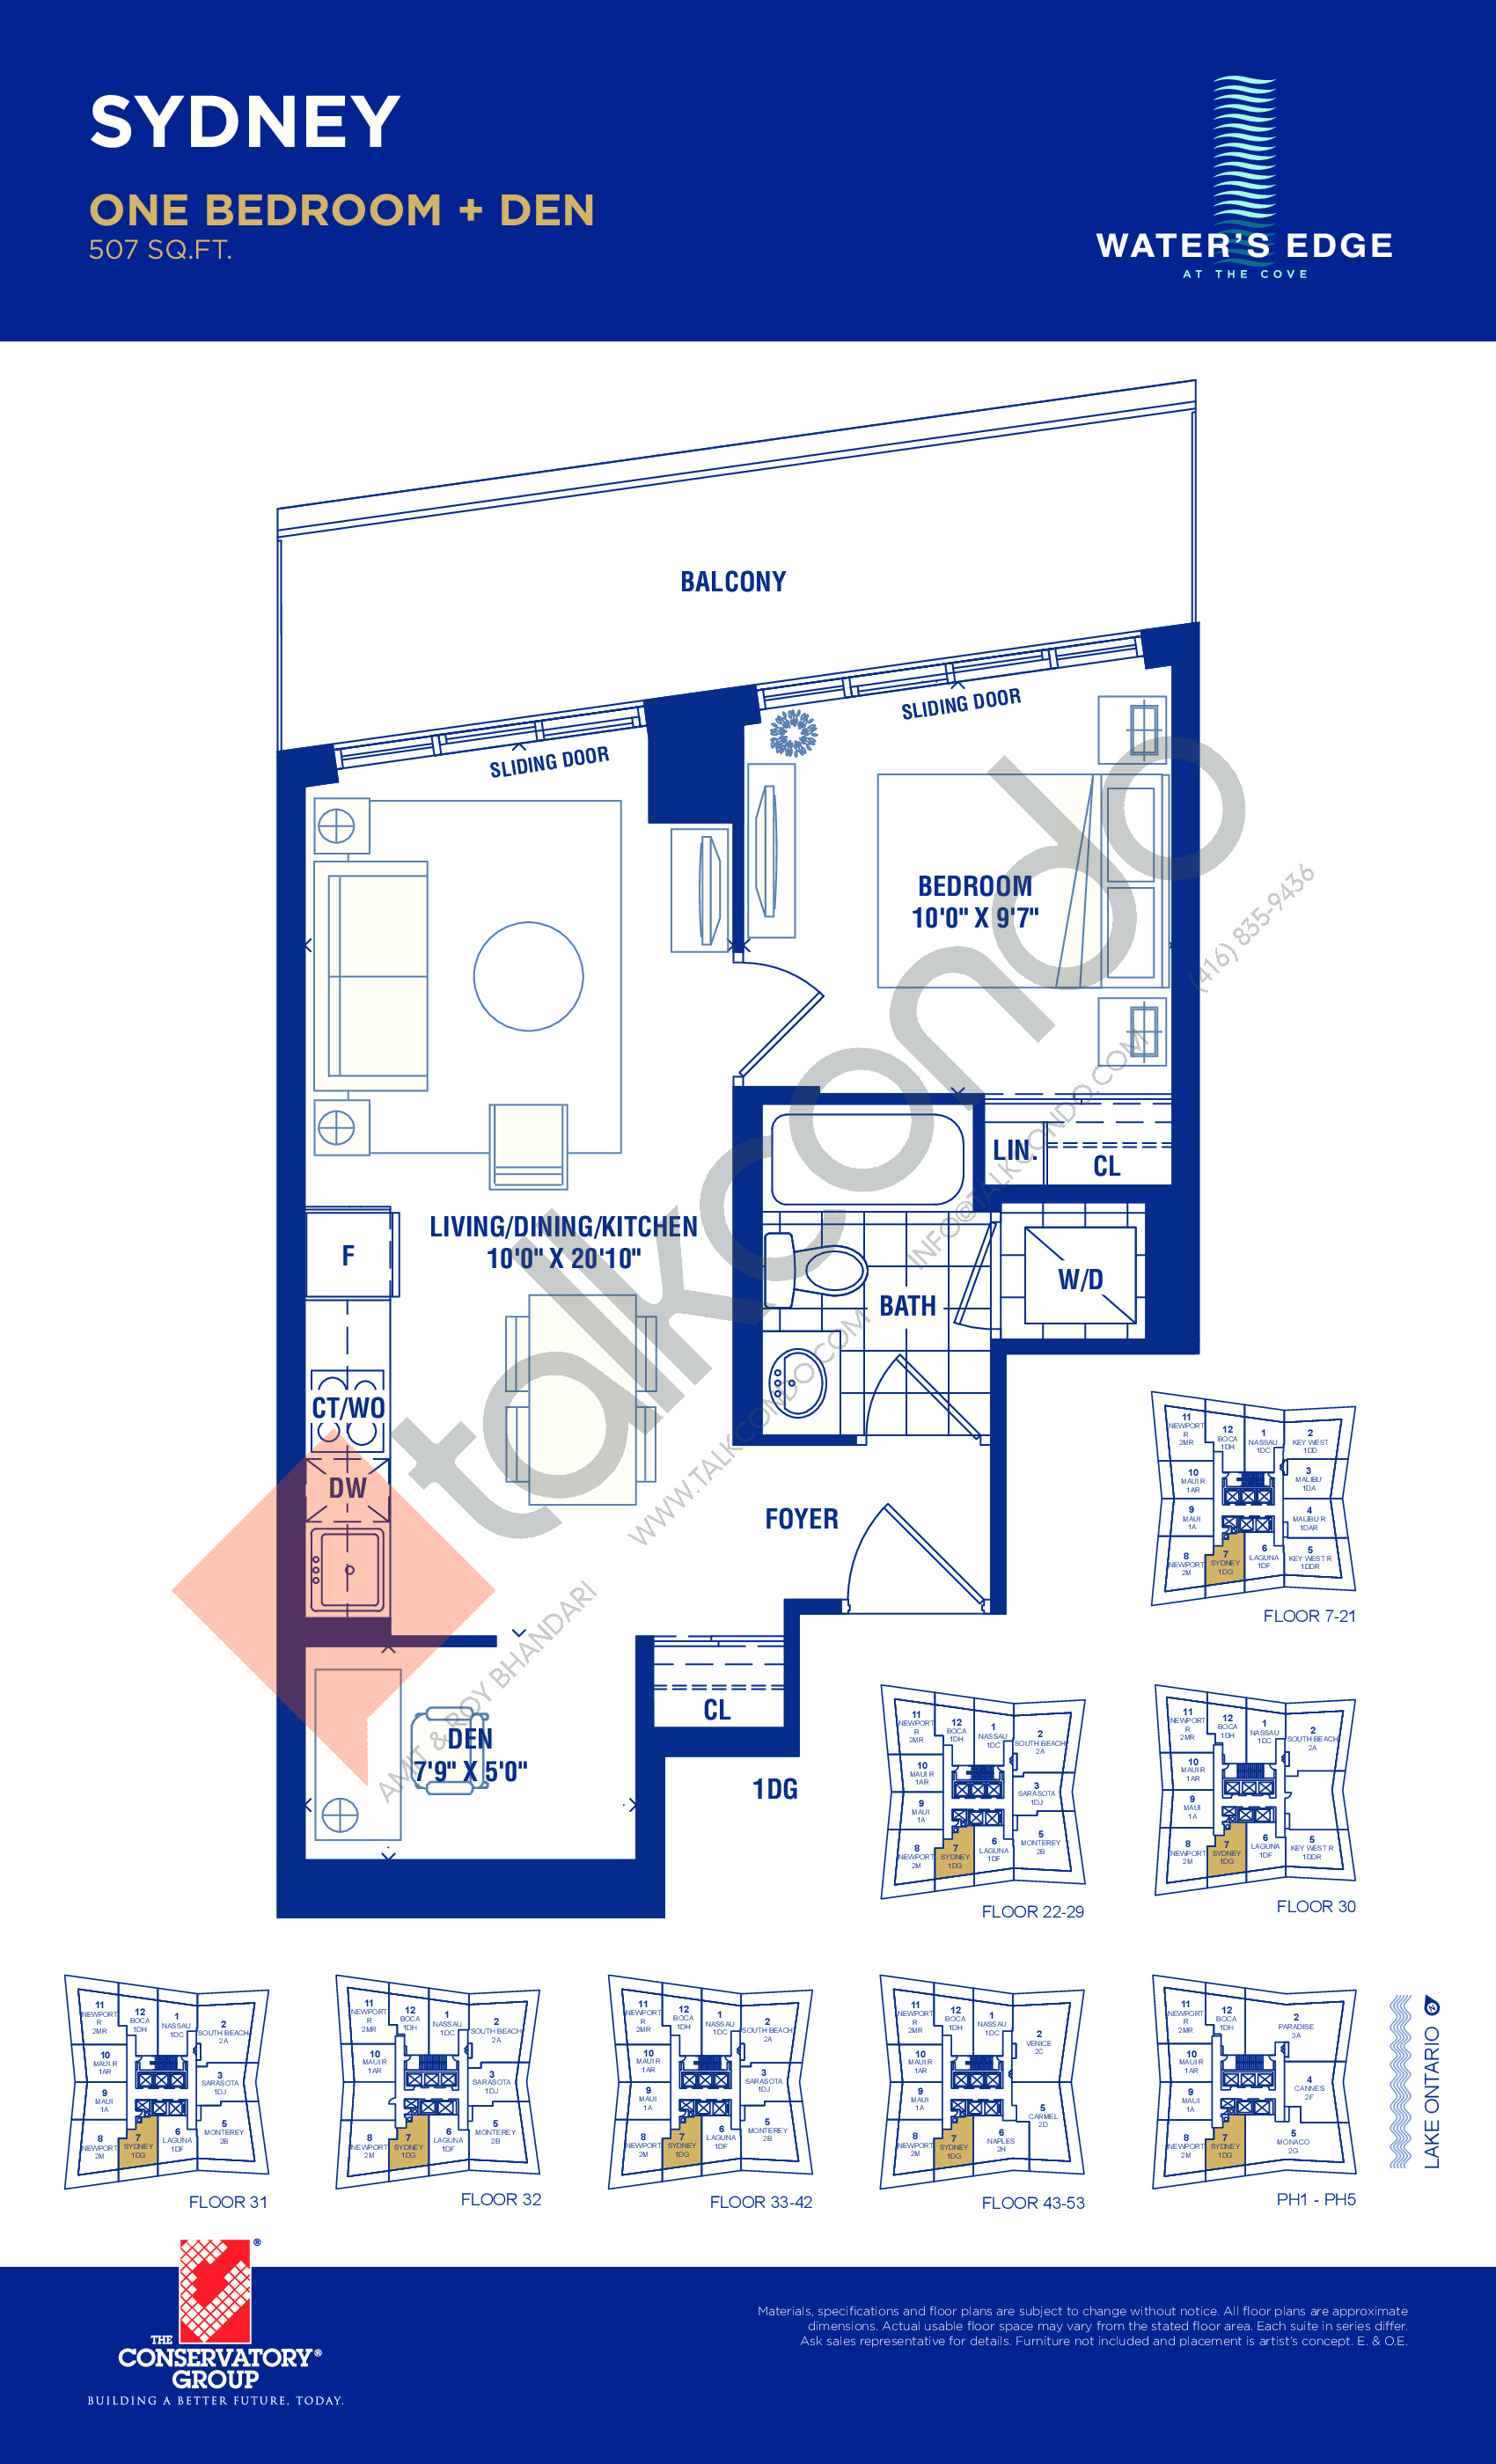 Sydney Floor Plan at Water's Edge at the Cove Condos - 507 sq.ft